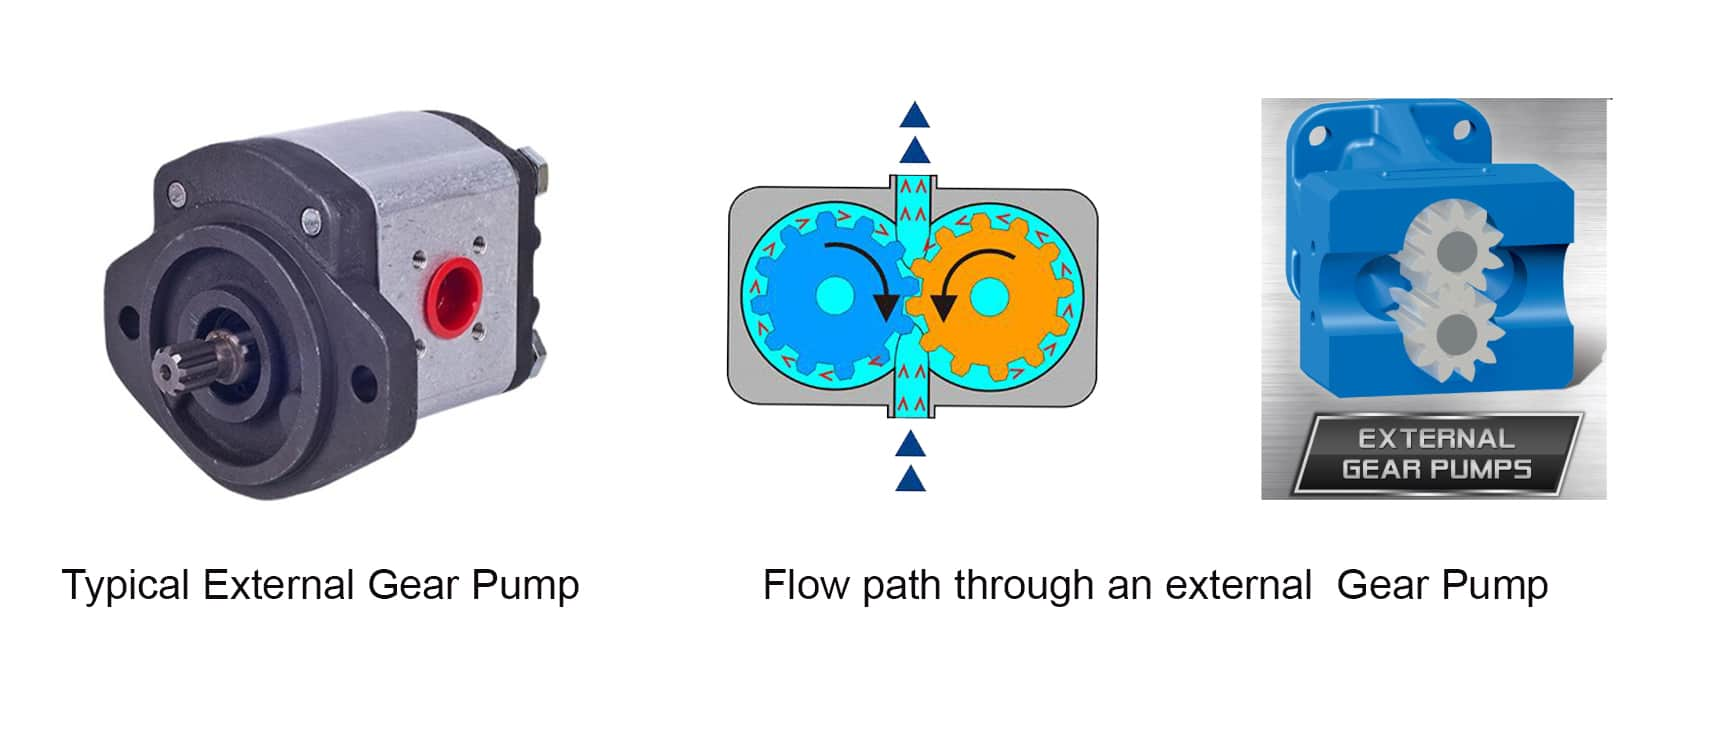 How to select the right gear pump